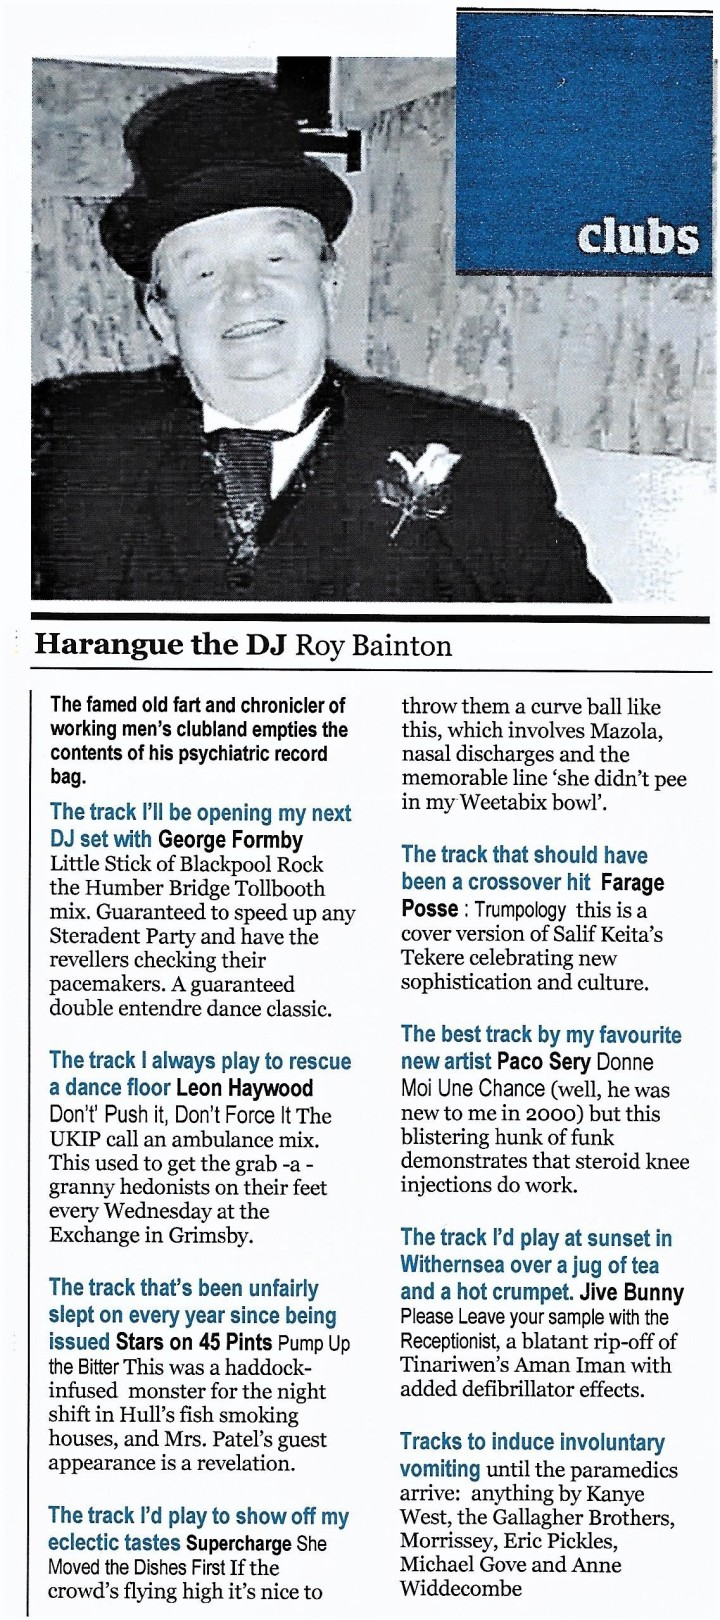 Harangue the DJ